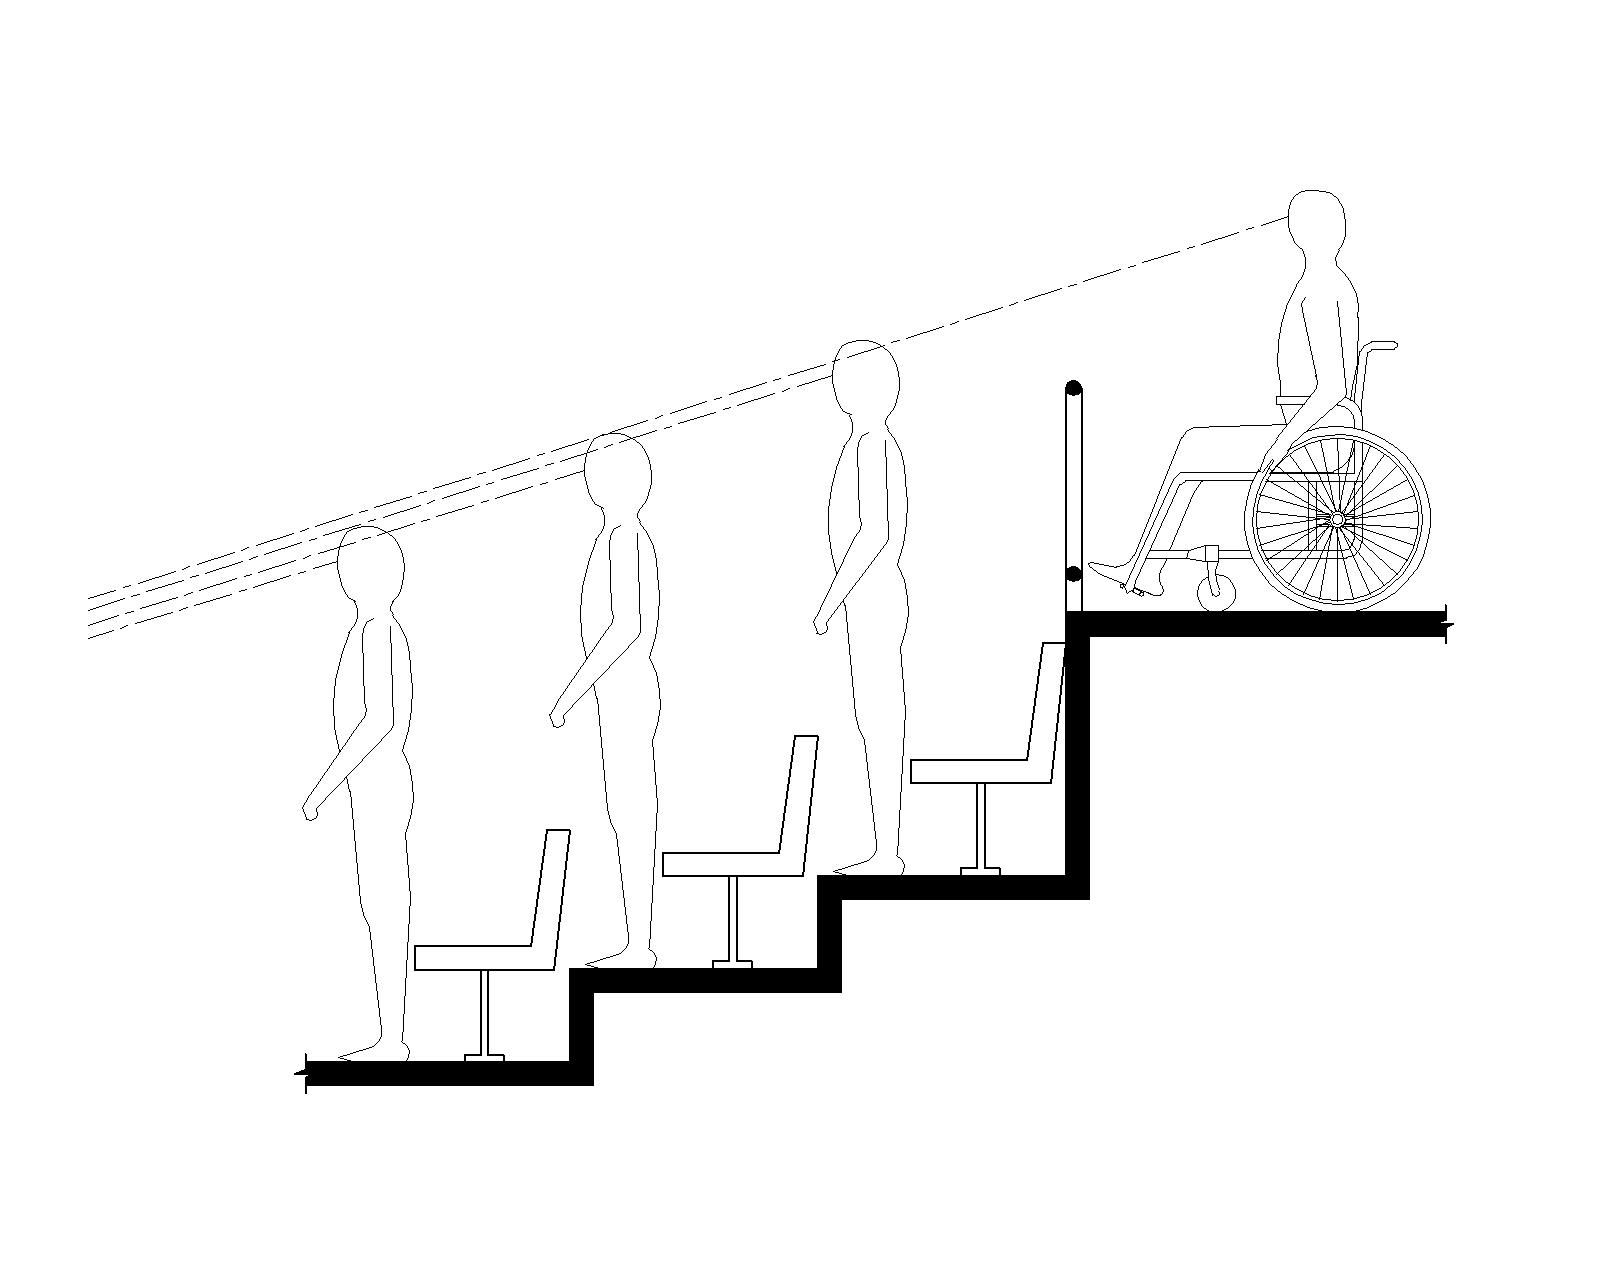 Elevation drawing shows a person using a wheelchair on an upper level of tiered seating elevated sufficiently to have a line of sight between the heads of spectators standing in front.